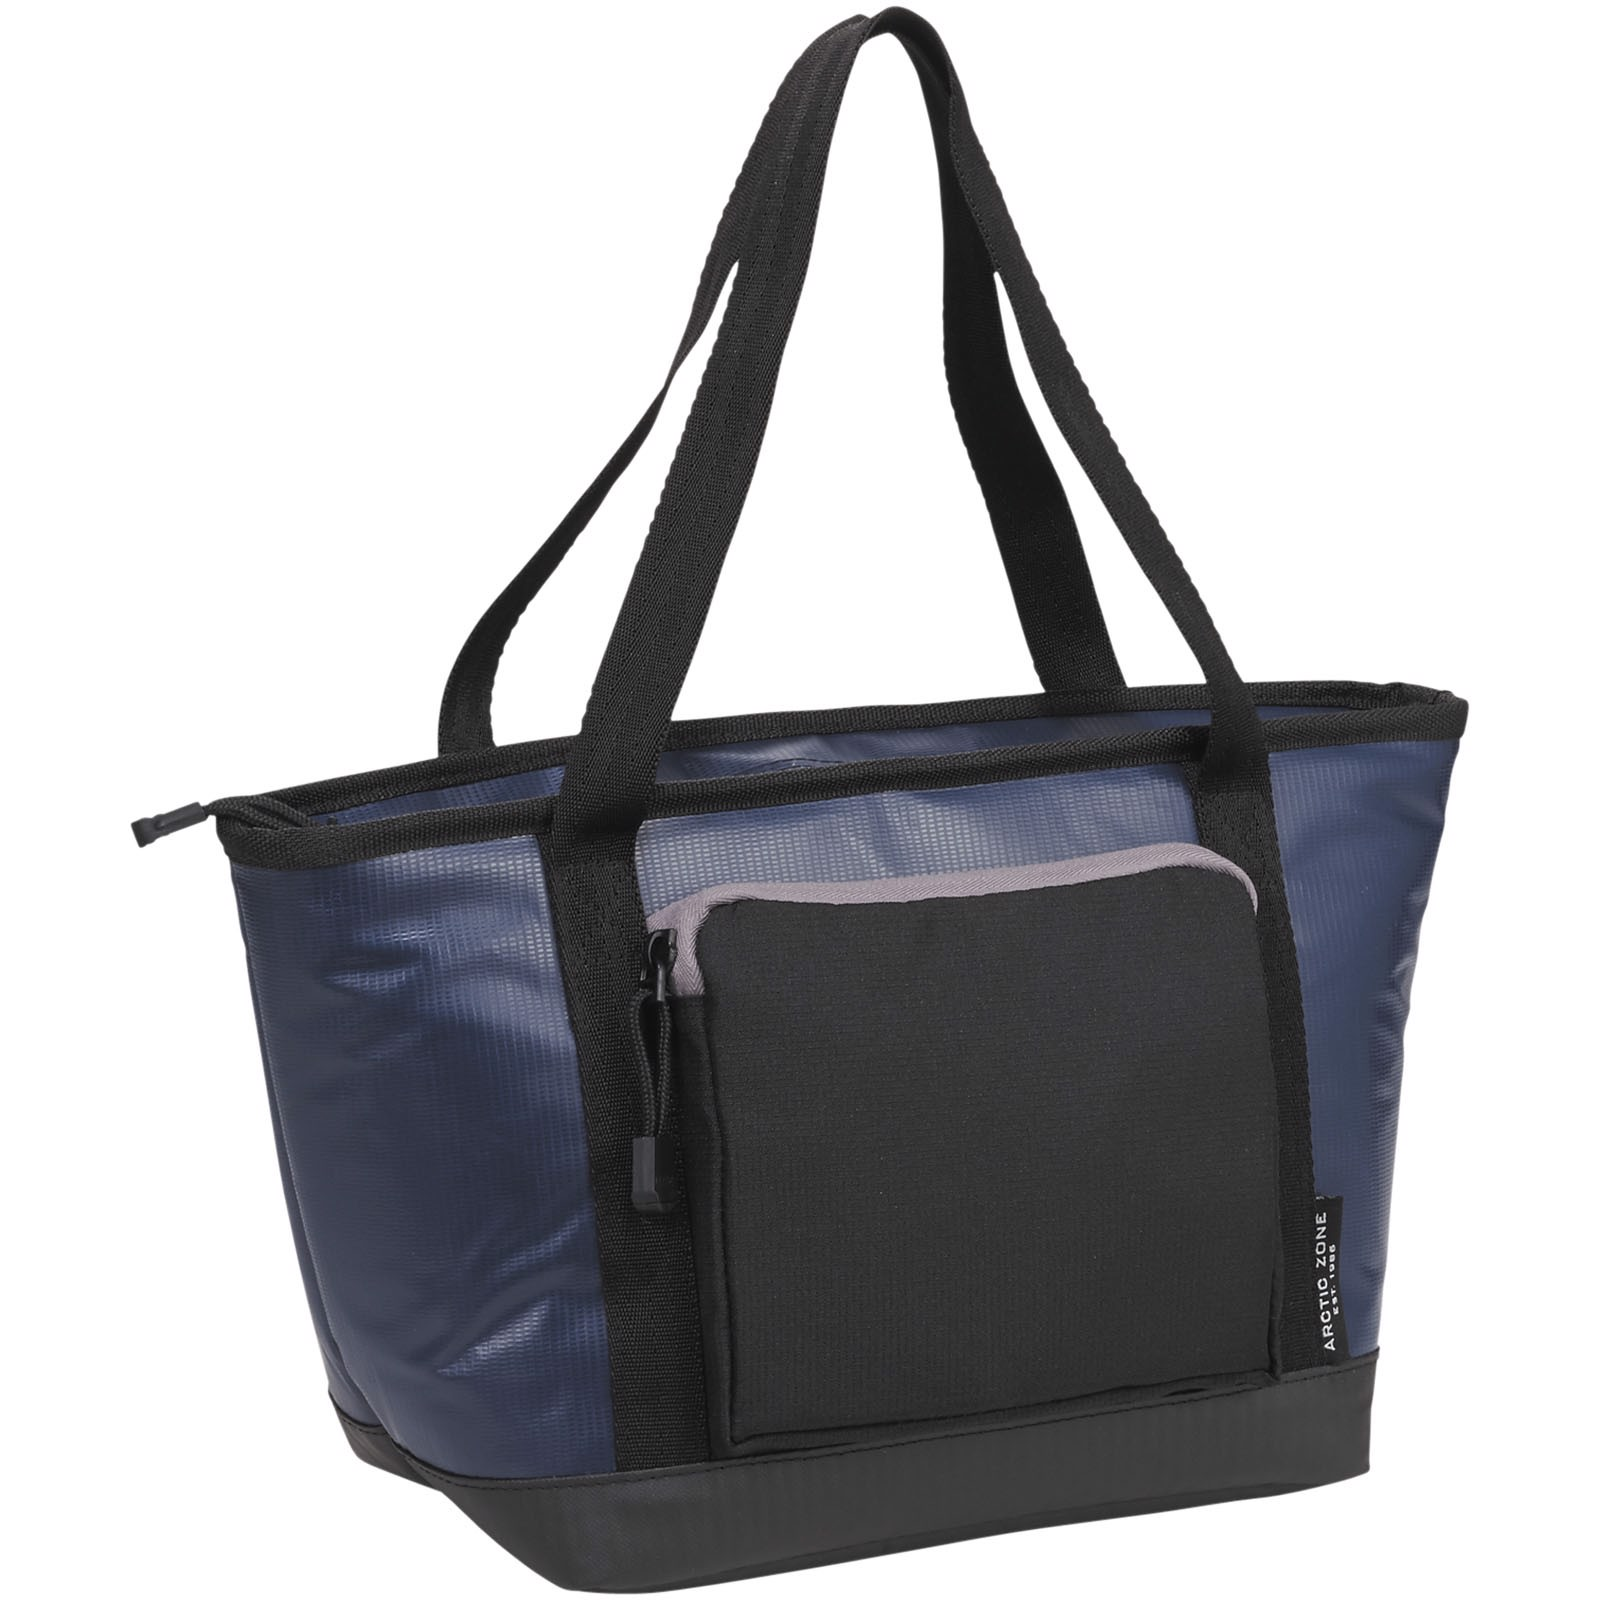 Titan 2-day ThermaFlect® lunch cooler bag - Navy